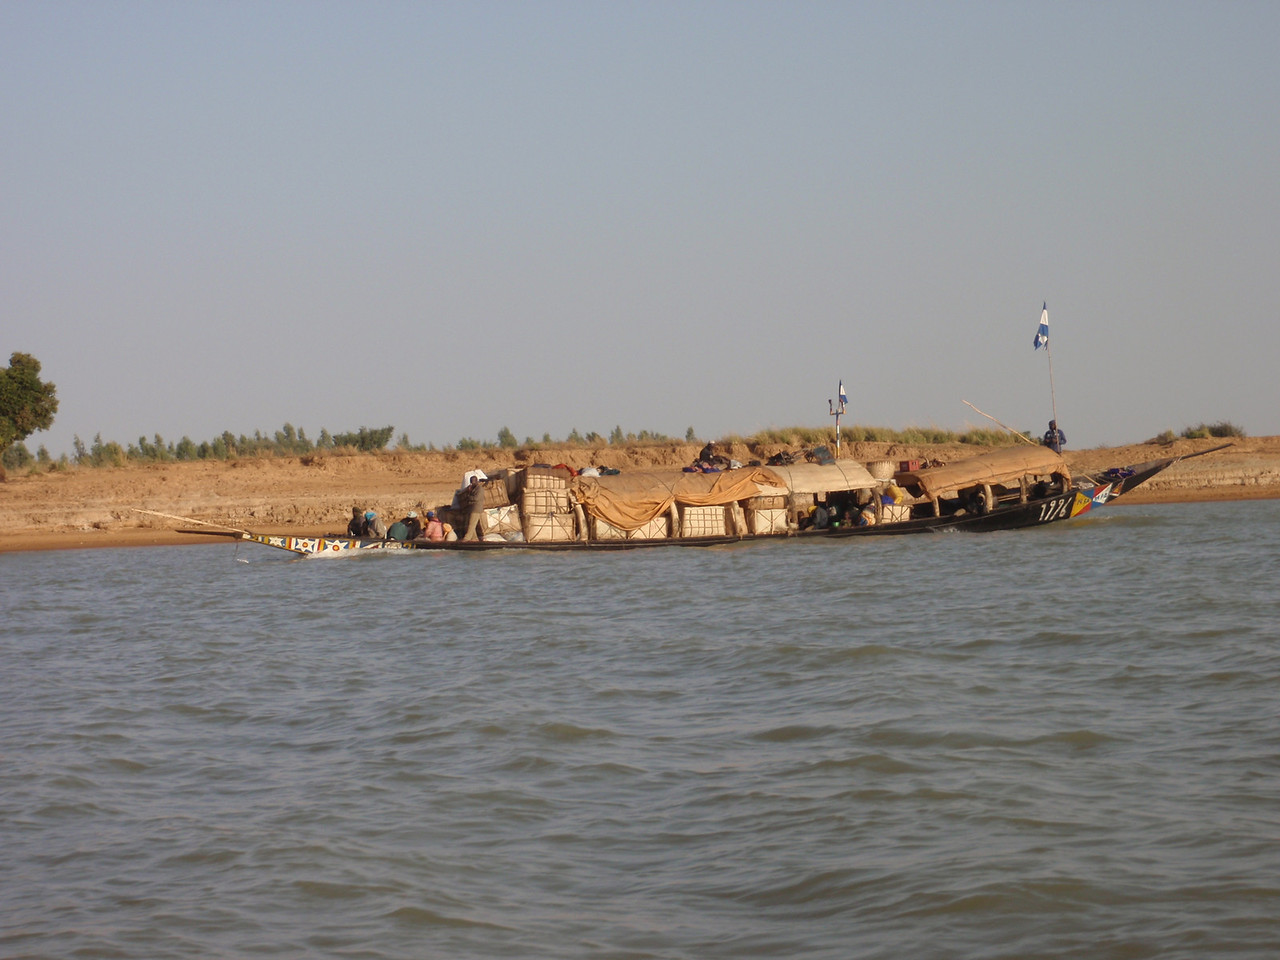 359_Niger River  Pirogue Carrying a Variety of Goods